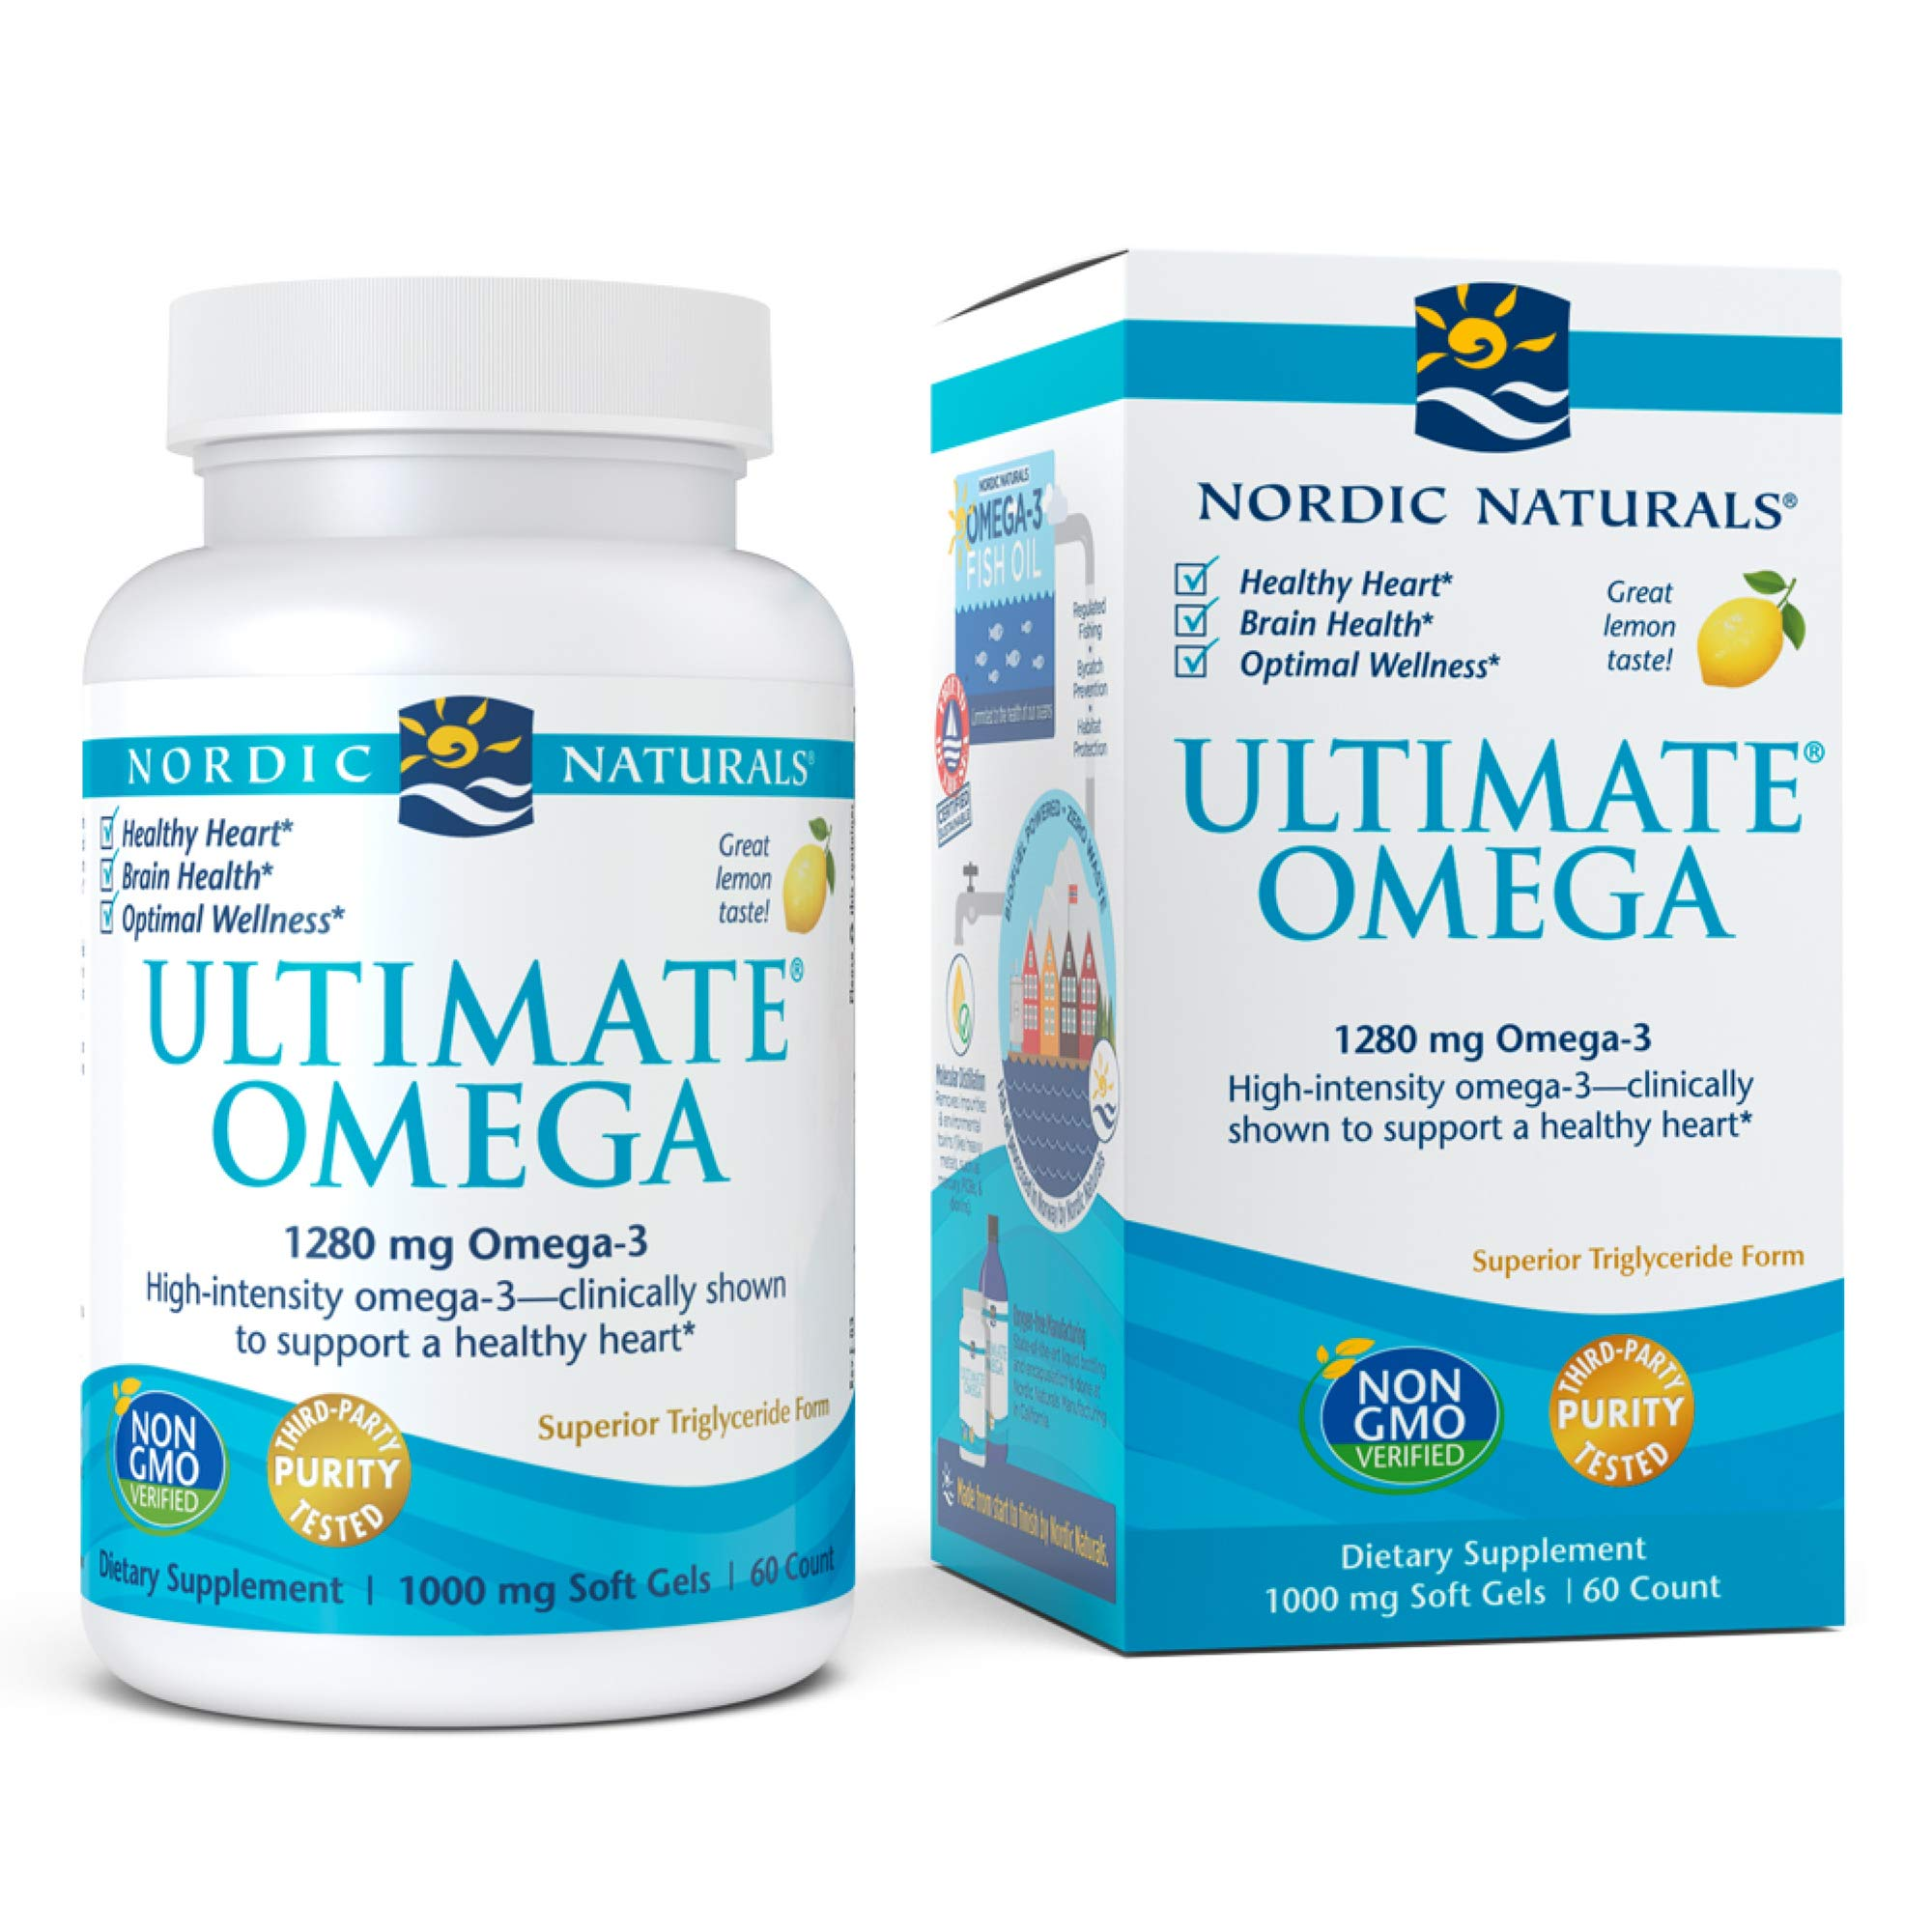 Nordic Naturals, Ultimate Omega, Fish Oil Supplement with Omega-3 DHA and EPA, Supports Heart Health and Brain Development, Burpless Lemon Flavor, (30 servings) 60 soft gels by Nordic Naturals